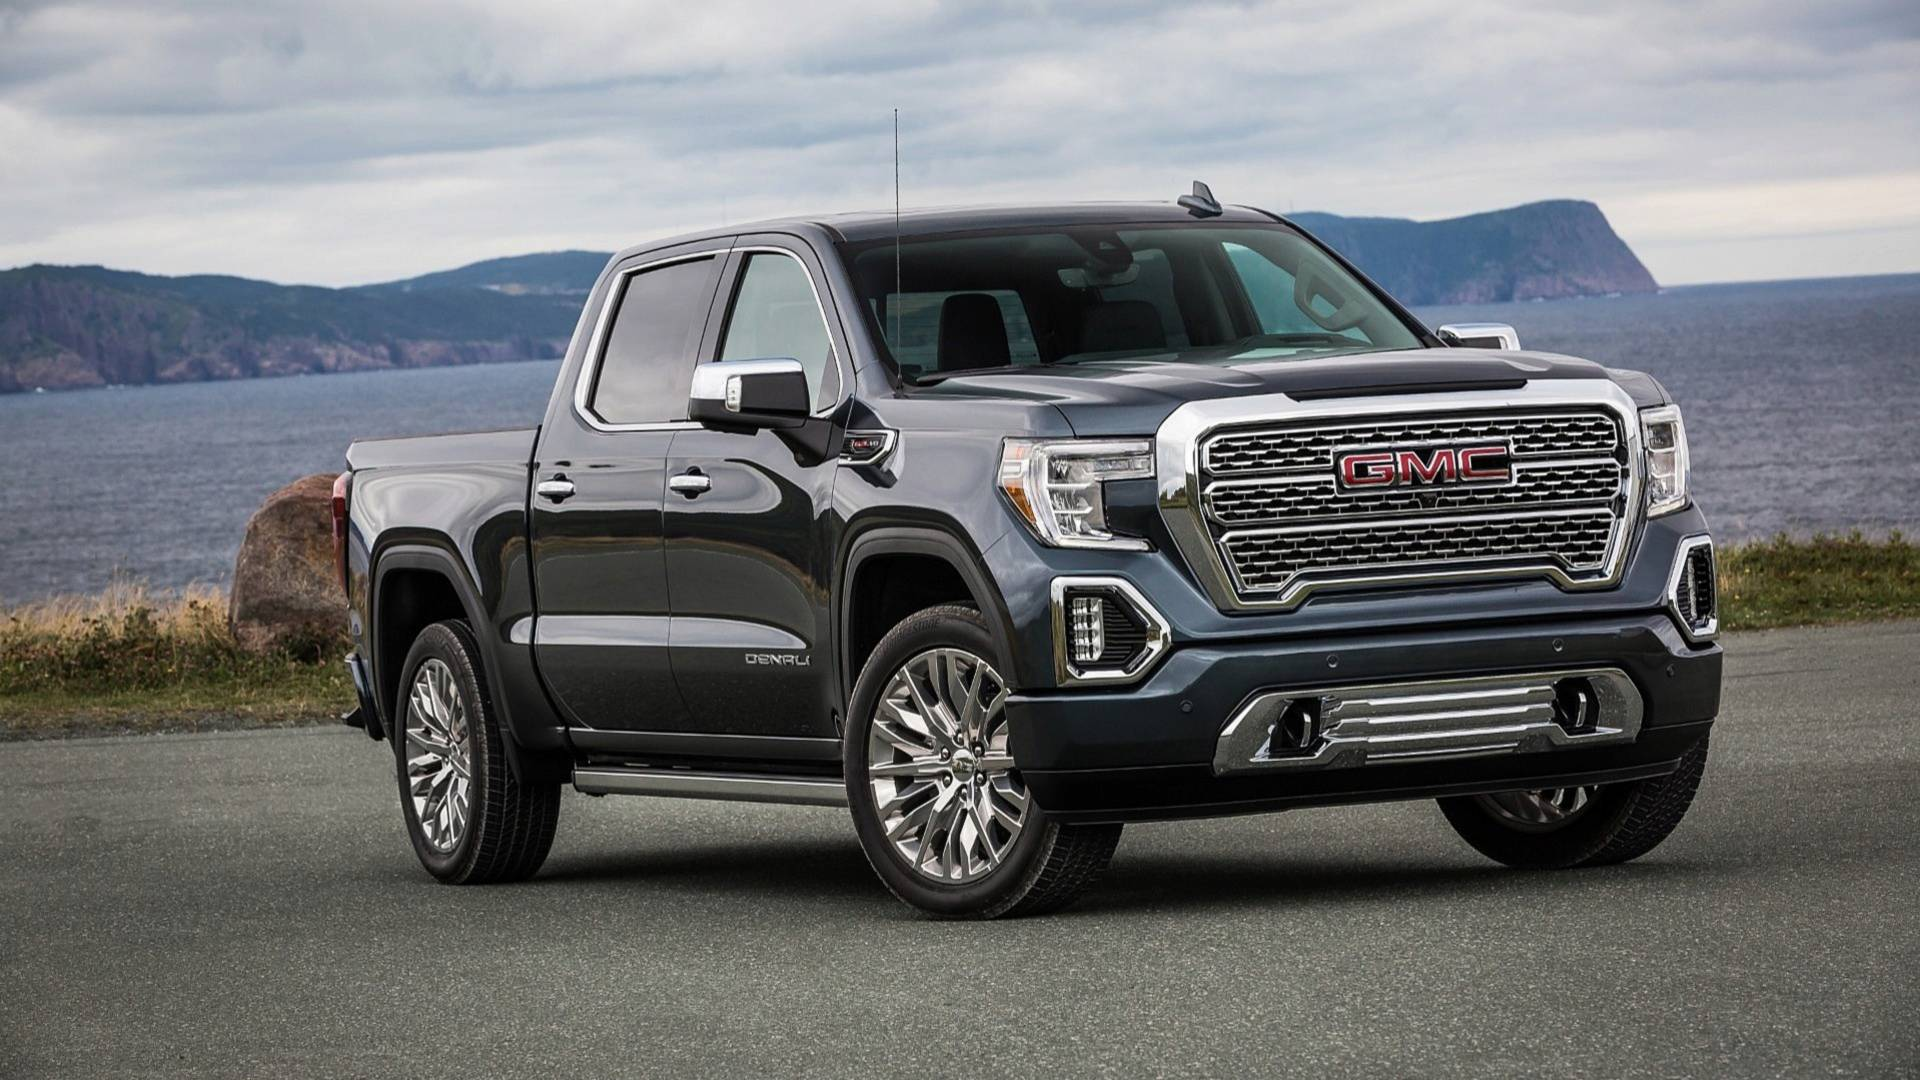 2019 GMC Sierra Denali First Drive: Working Man Meets Iron Man